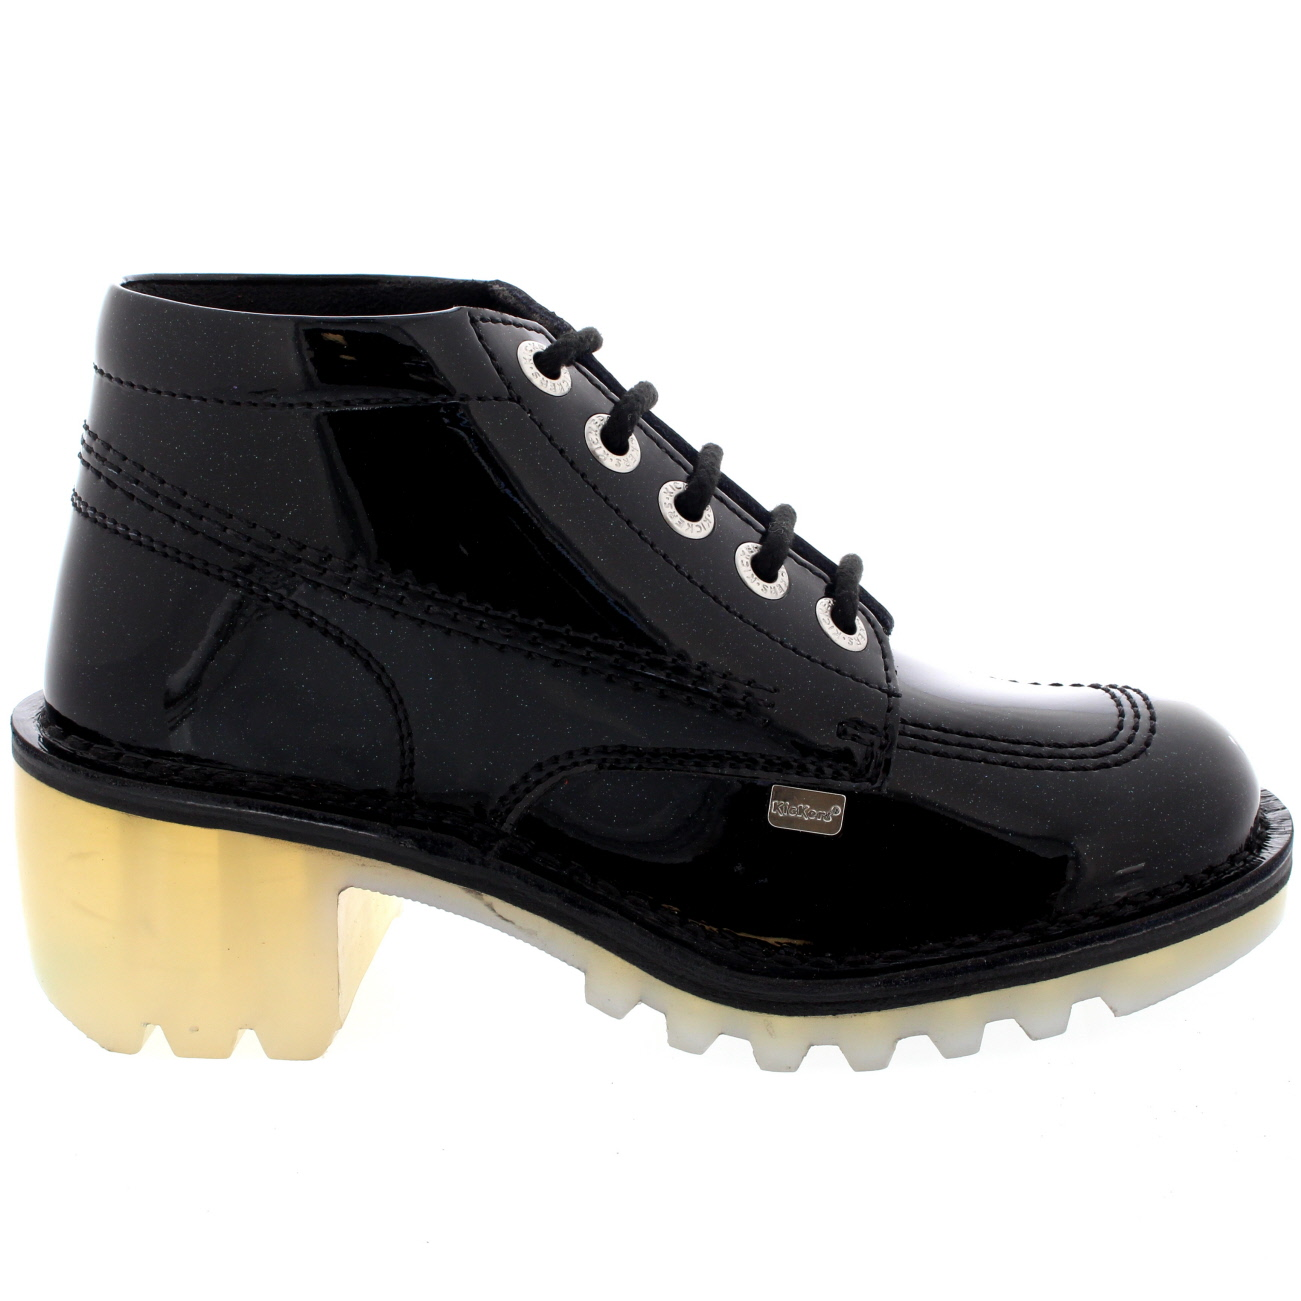 Womens Kickers Kopey Hi Patent Leather Lace Up High Heel ...